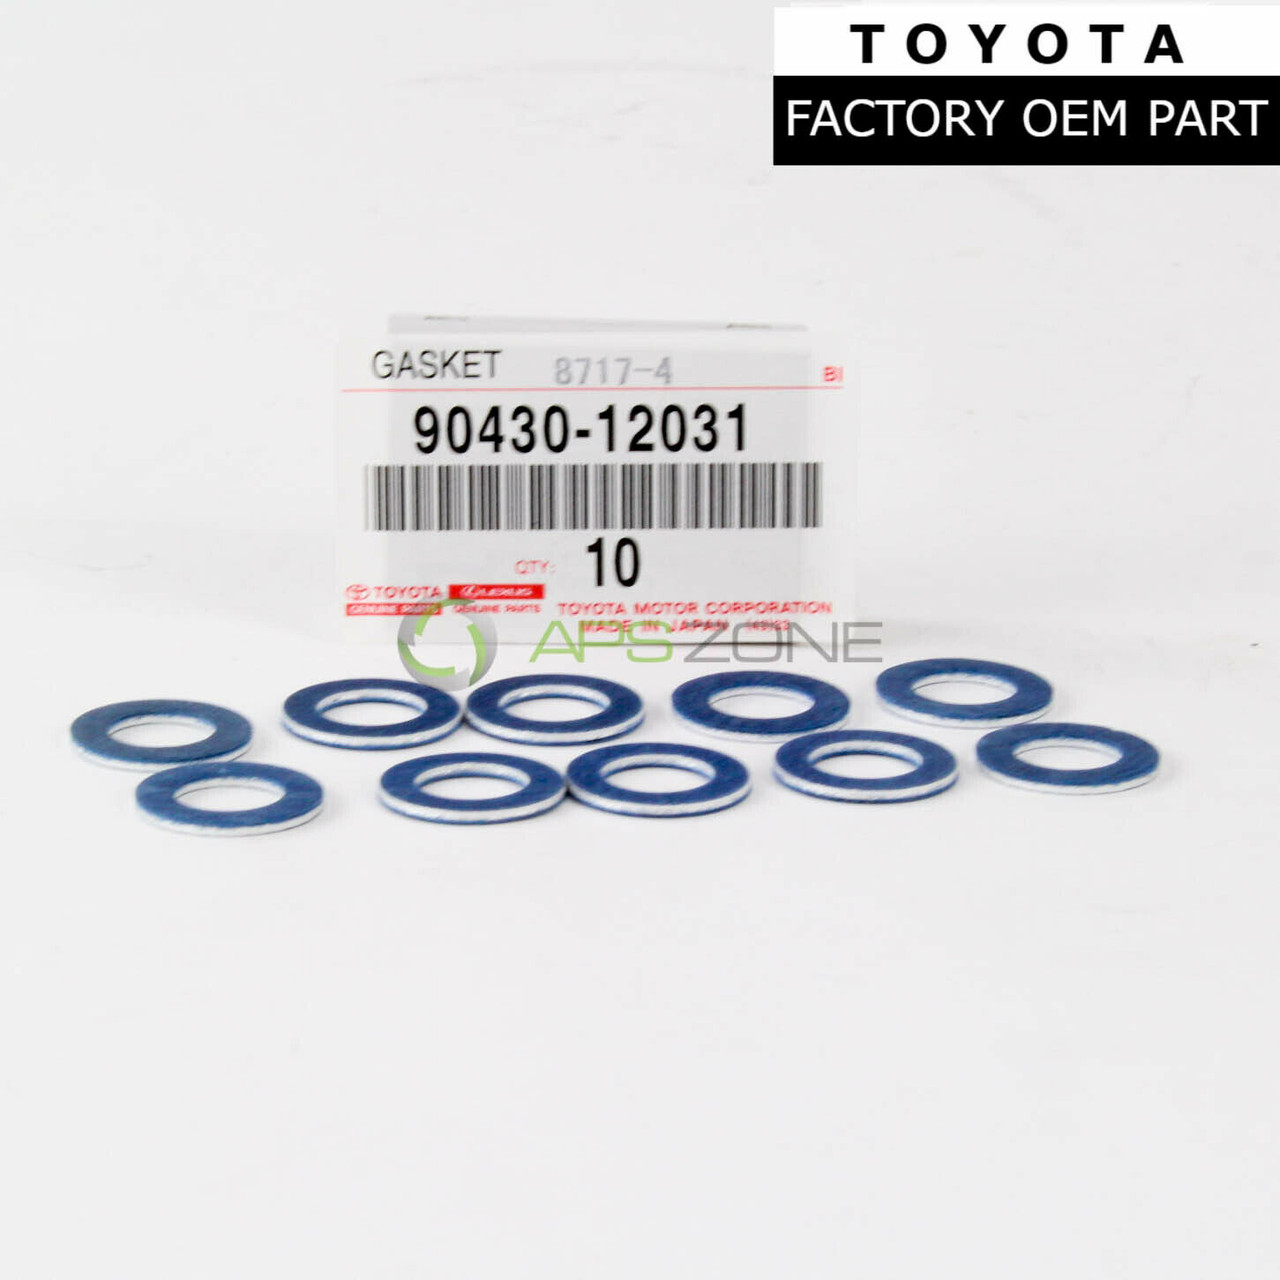 Oil Drain Plug Gaskets Replacement for TOYOTA LEXUS SCION Crush Washer Seals Replaces# 9043012031 Aluminum 24Pcs